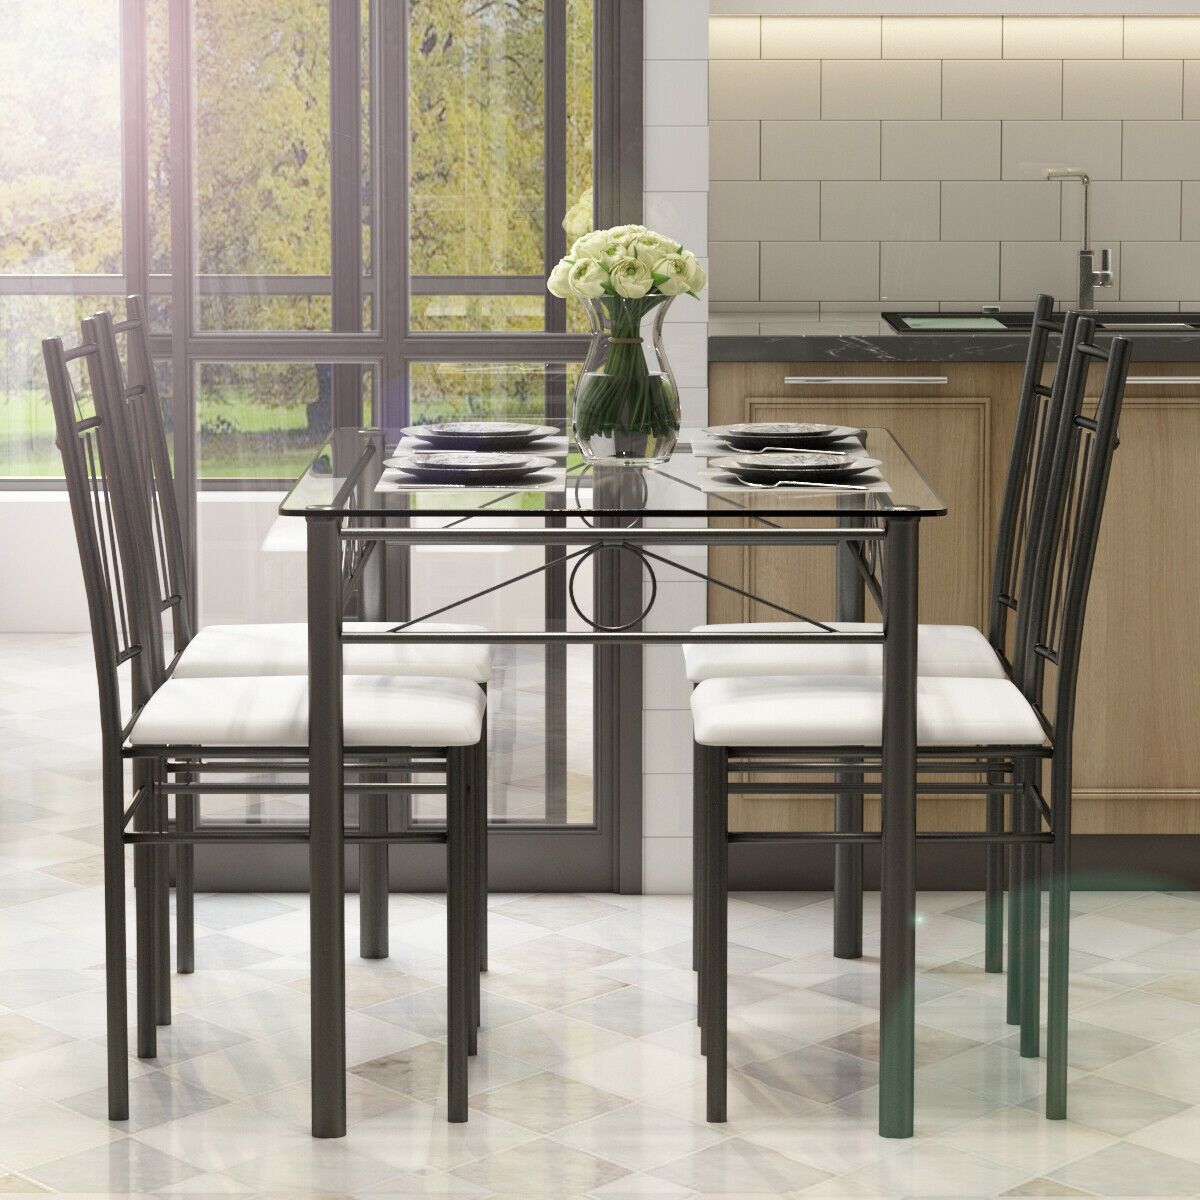 5 Pcs Glass Metal Table And 4 Chairs Dining Set Dining Room Design Glass Dining Table Set Metal Table